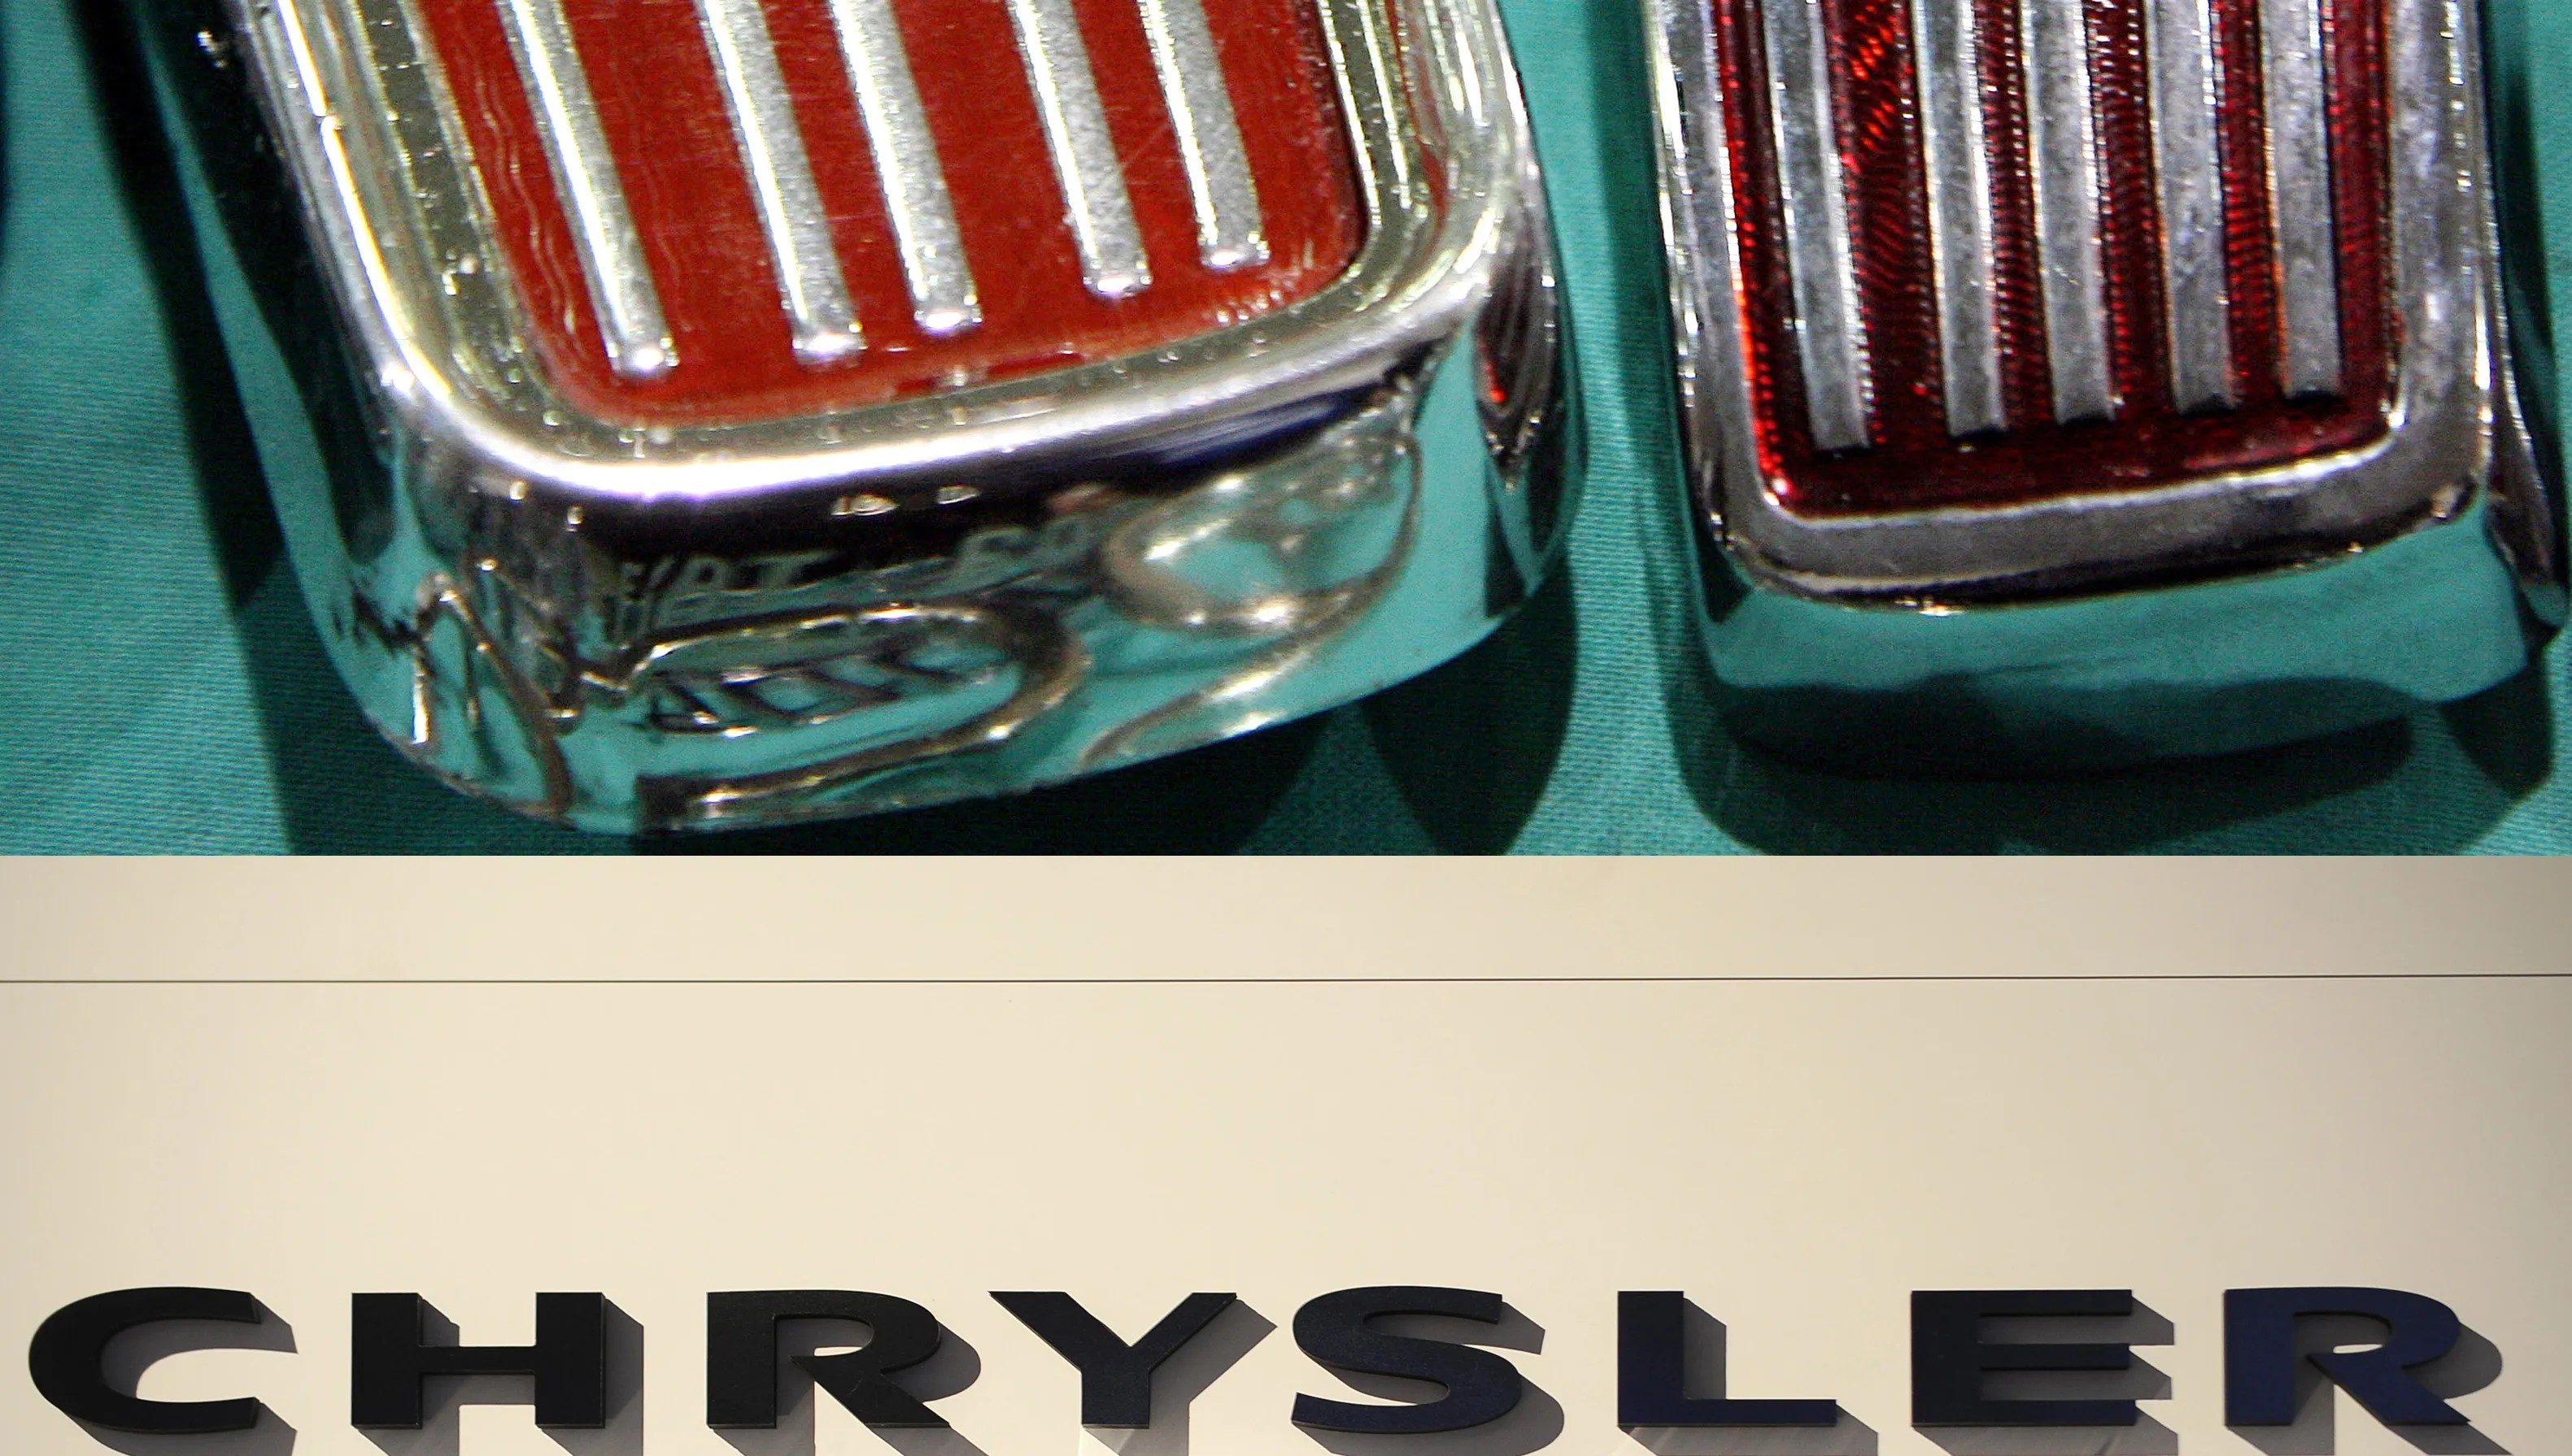 'Fiat Chrysler Automobiles' is new name, stock on NYSE